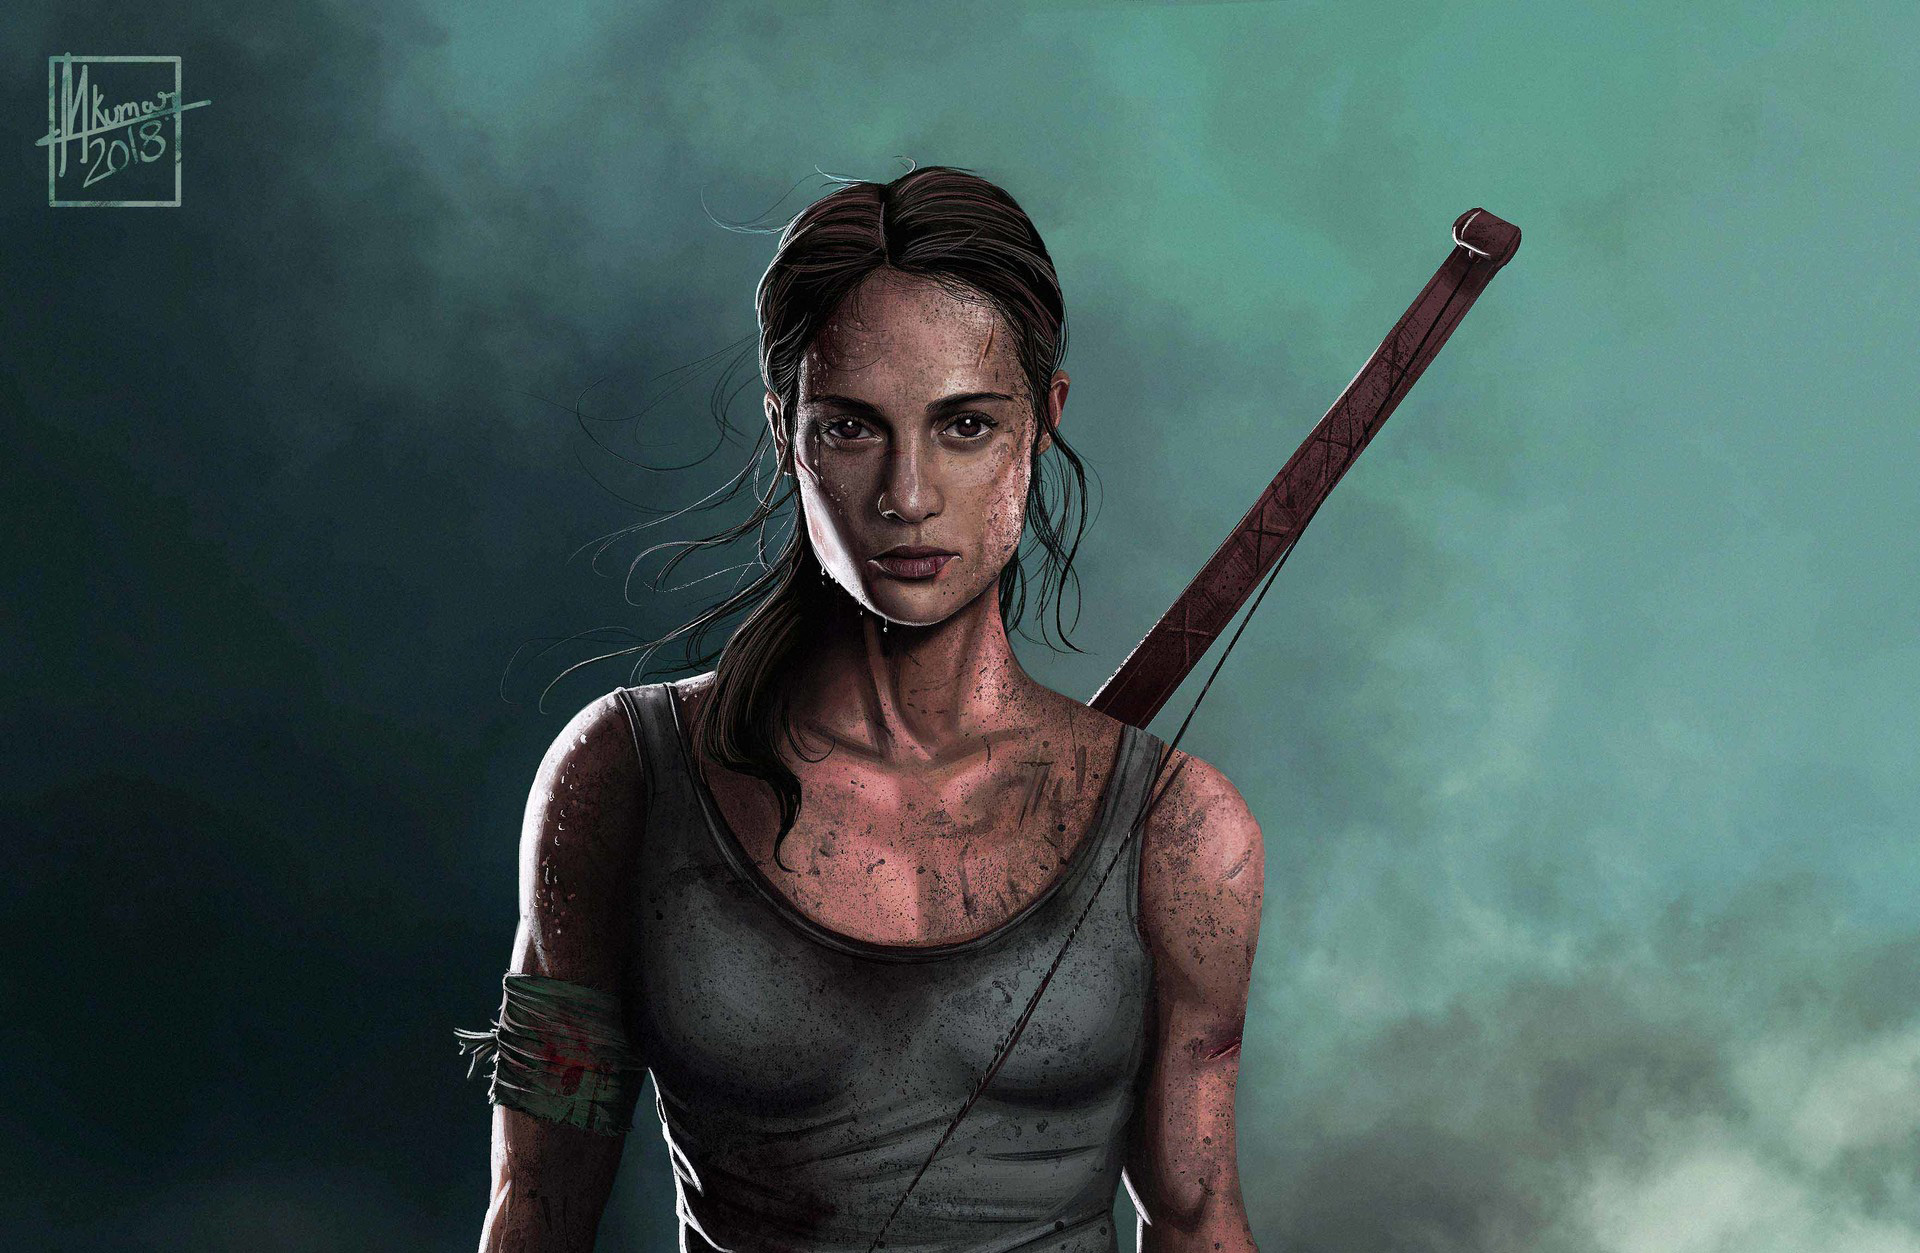 2932x2932 Pubg Android Game 4k Ipad Pro Retina Display Hd: Tomb Raider Alicia Vikander Artwork, HD Movies, 4k